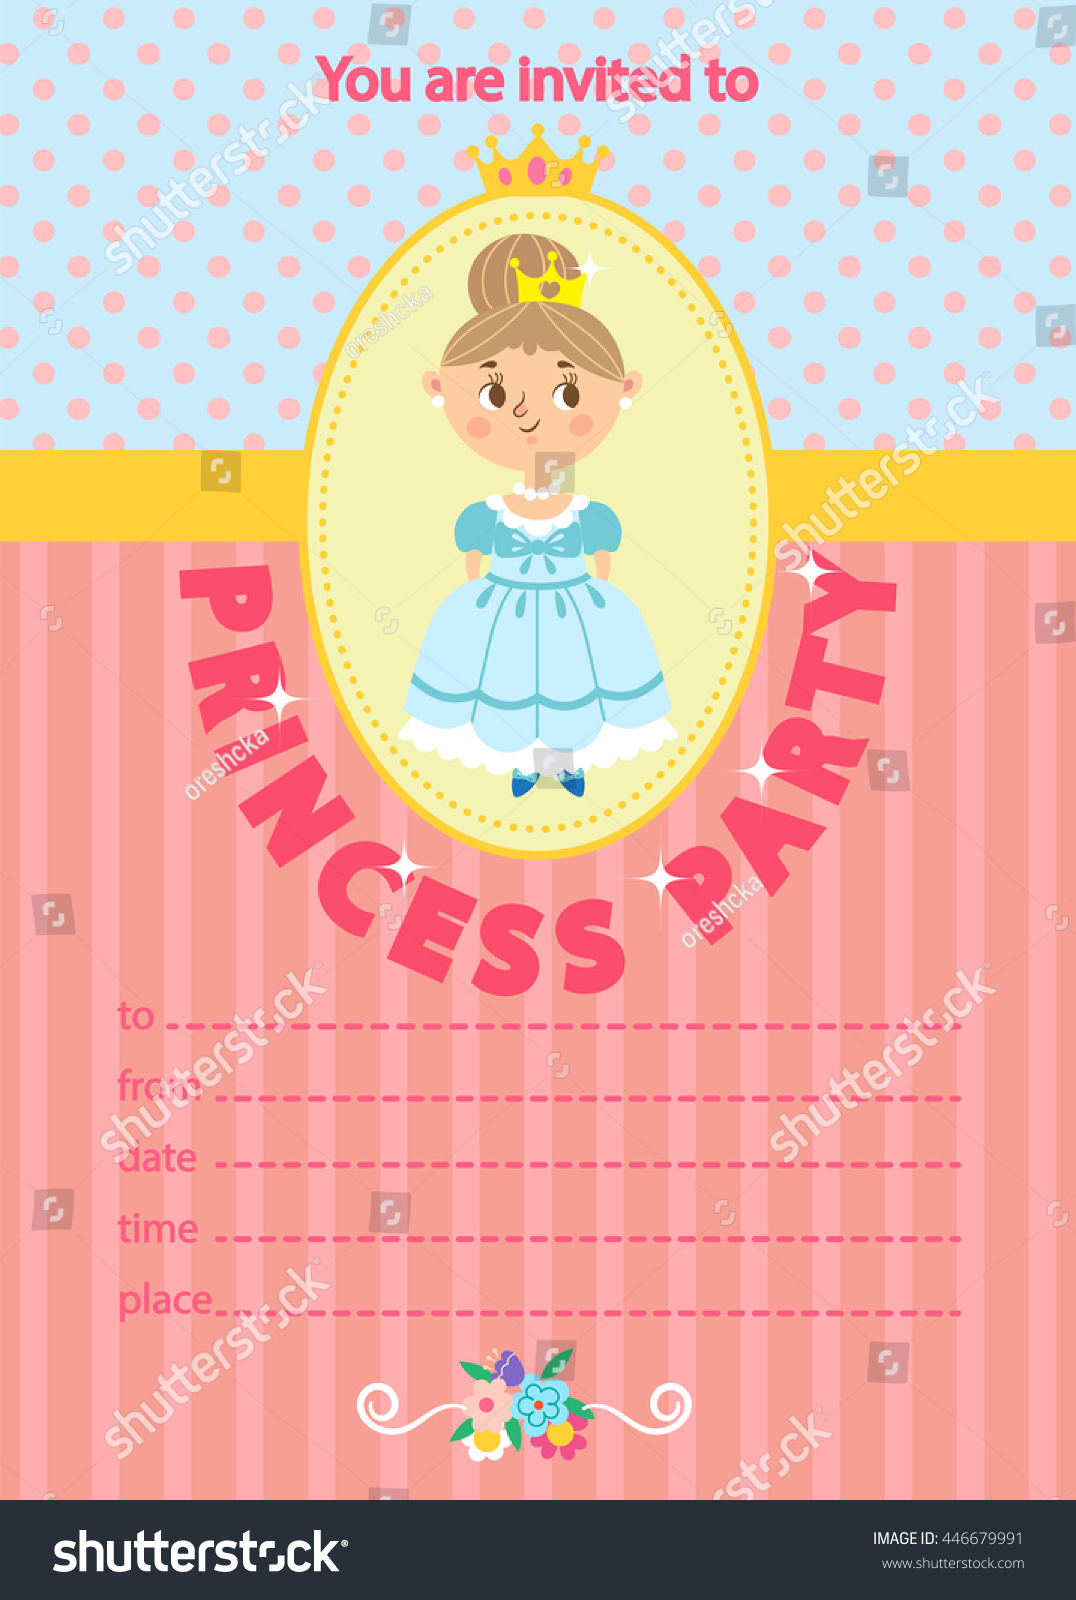 Princess Birthday Party Invitation Template Card Kids Fun In Pool